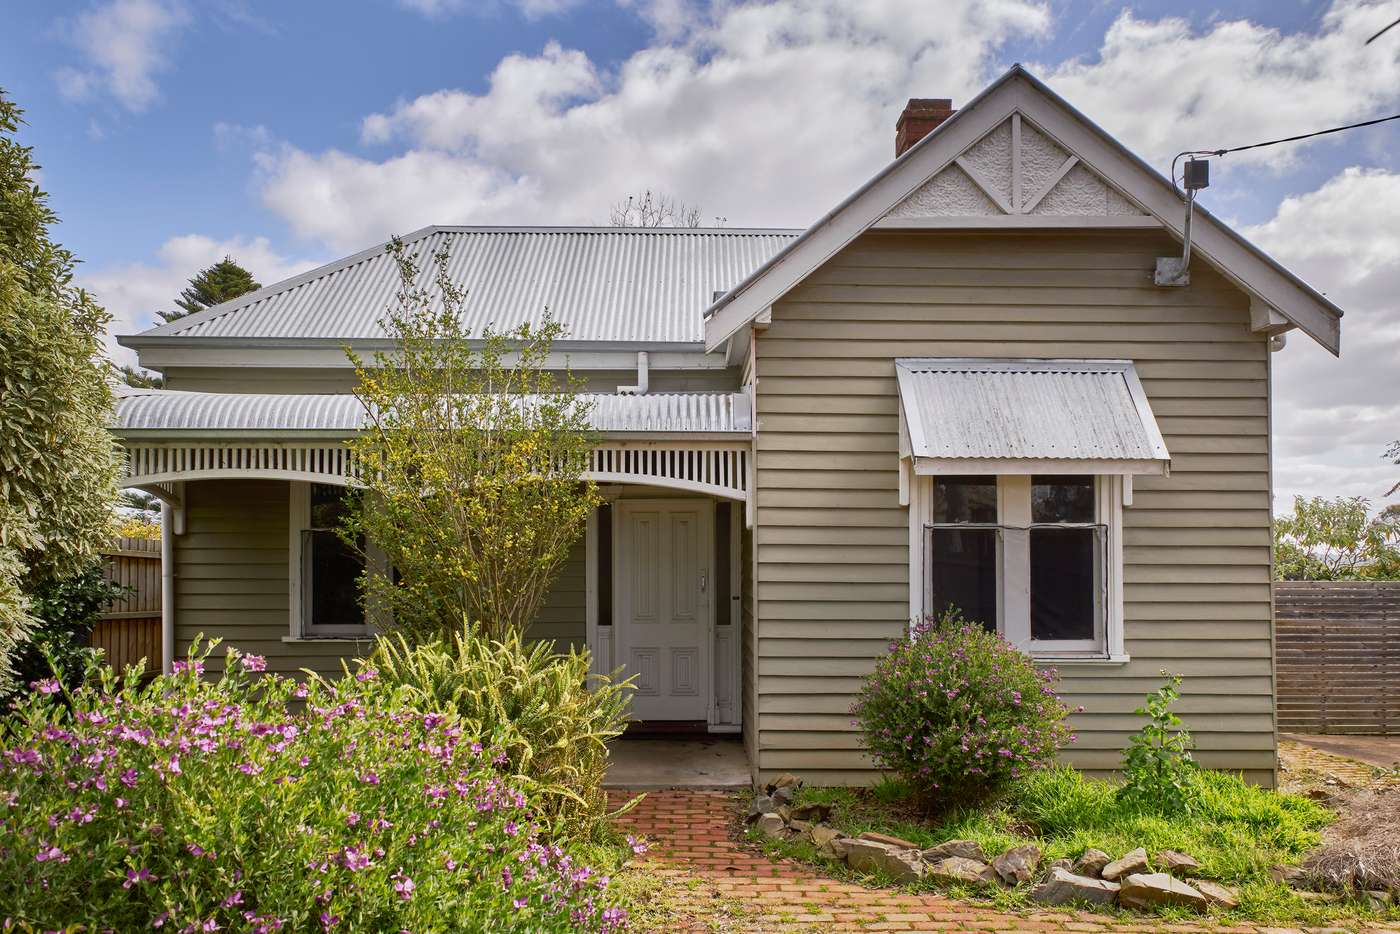 Main view of Homely house listing, 154 Princes Way, Drouin VIC 3818